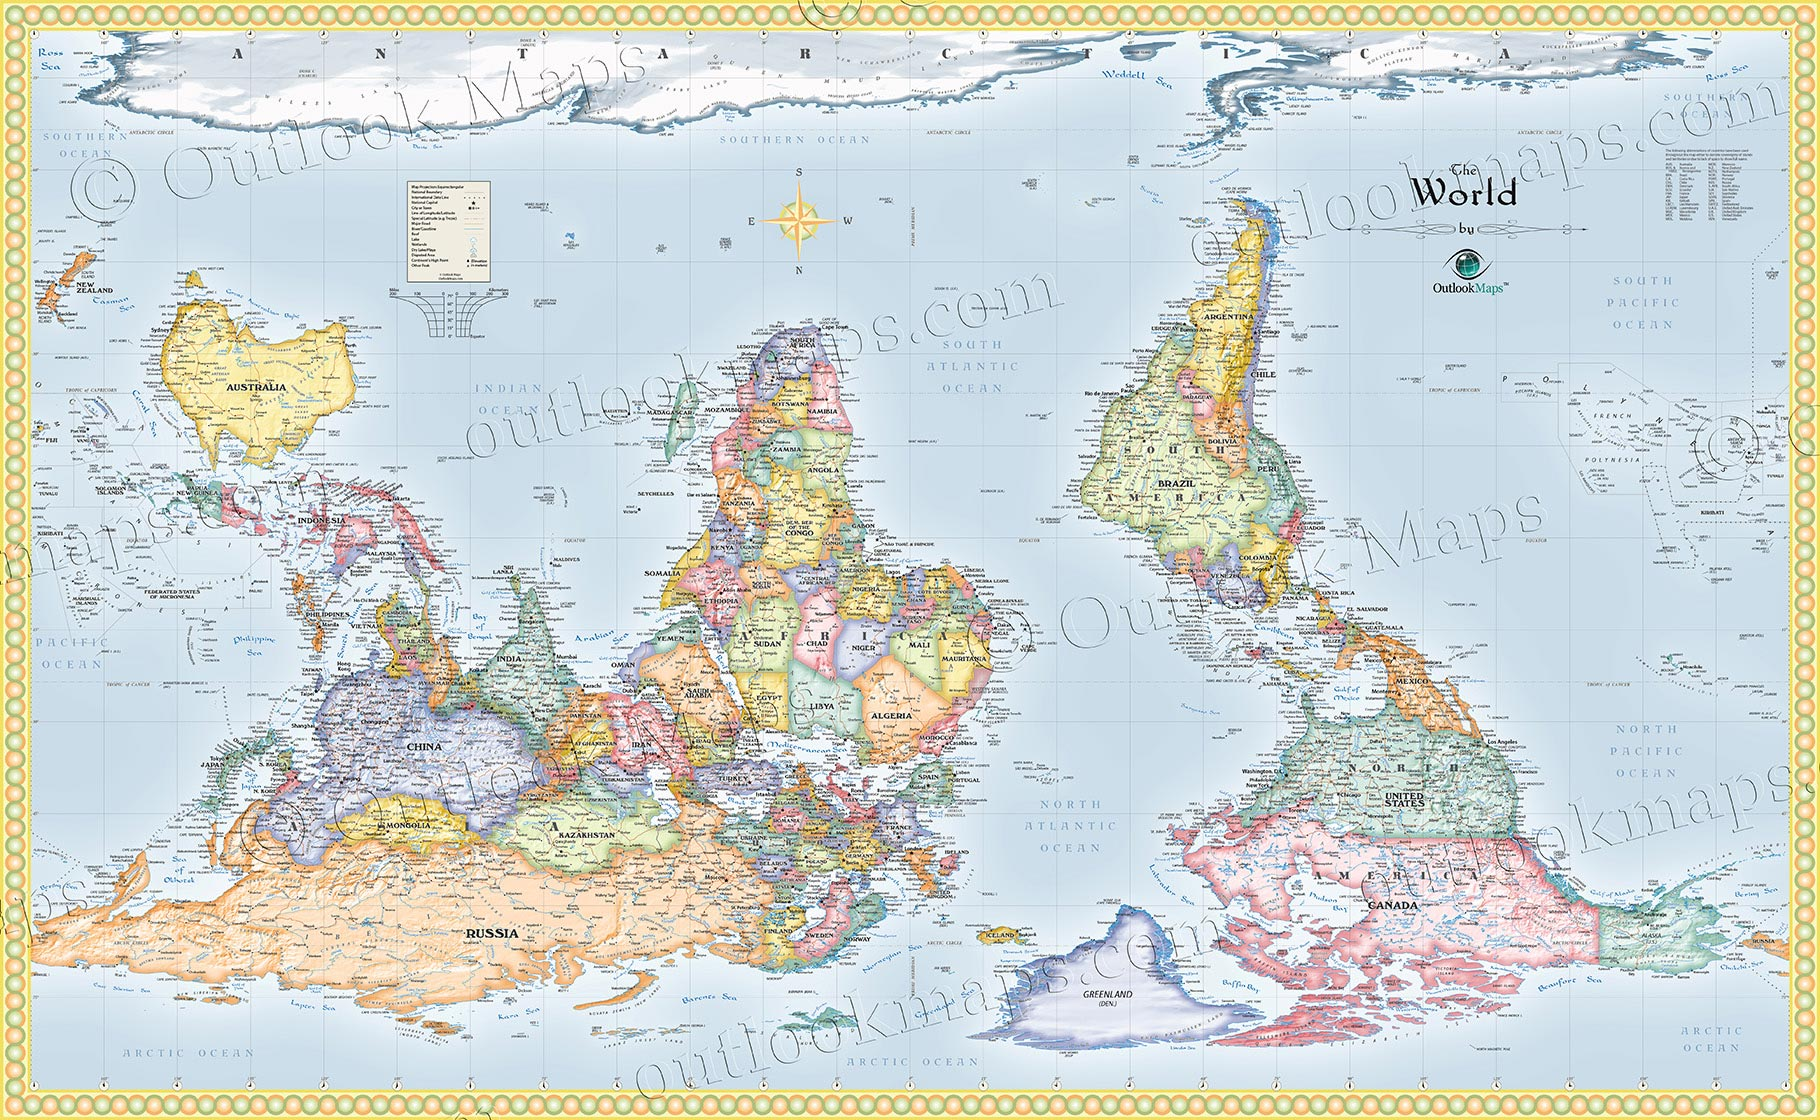 Upside down world map standard political map style upside down political map of the world gumiabroncs